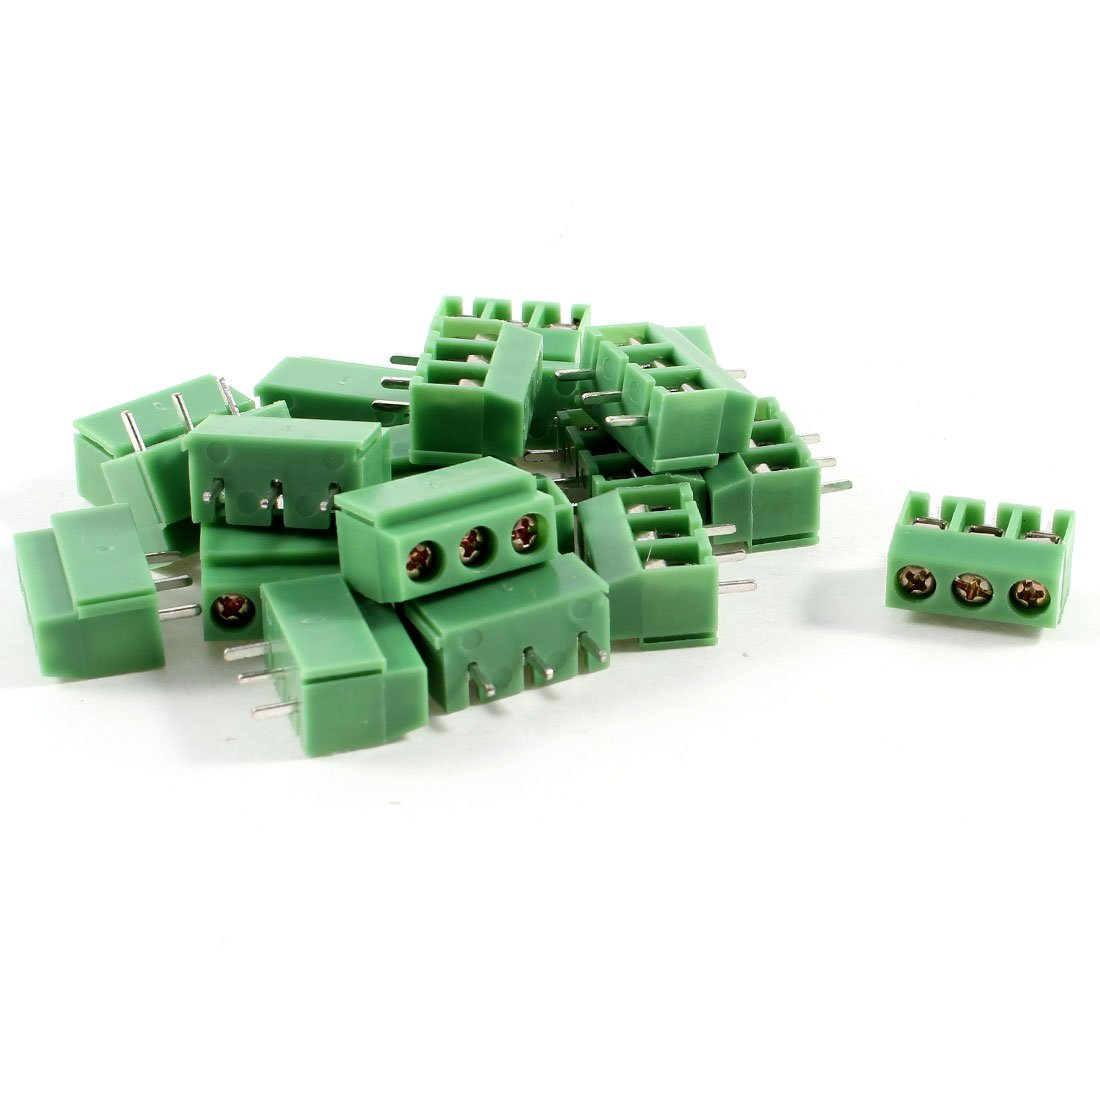 IMC Hot 20 Pcs 3 Pin 5mm Pitch PCB Mount Screw Terminal Block AC 250V 8A hot factory direct wholesale idc40 male plug 40pin port header terminal breakout pcb board block 2 row screw